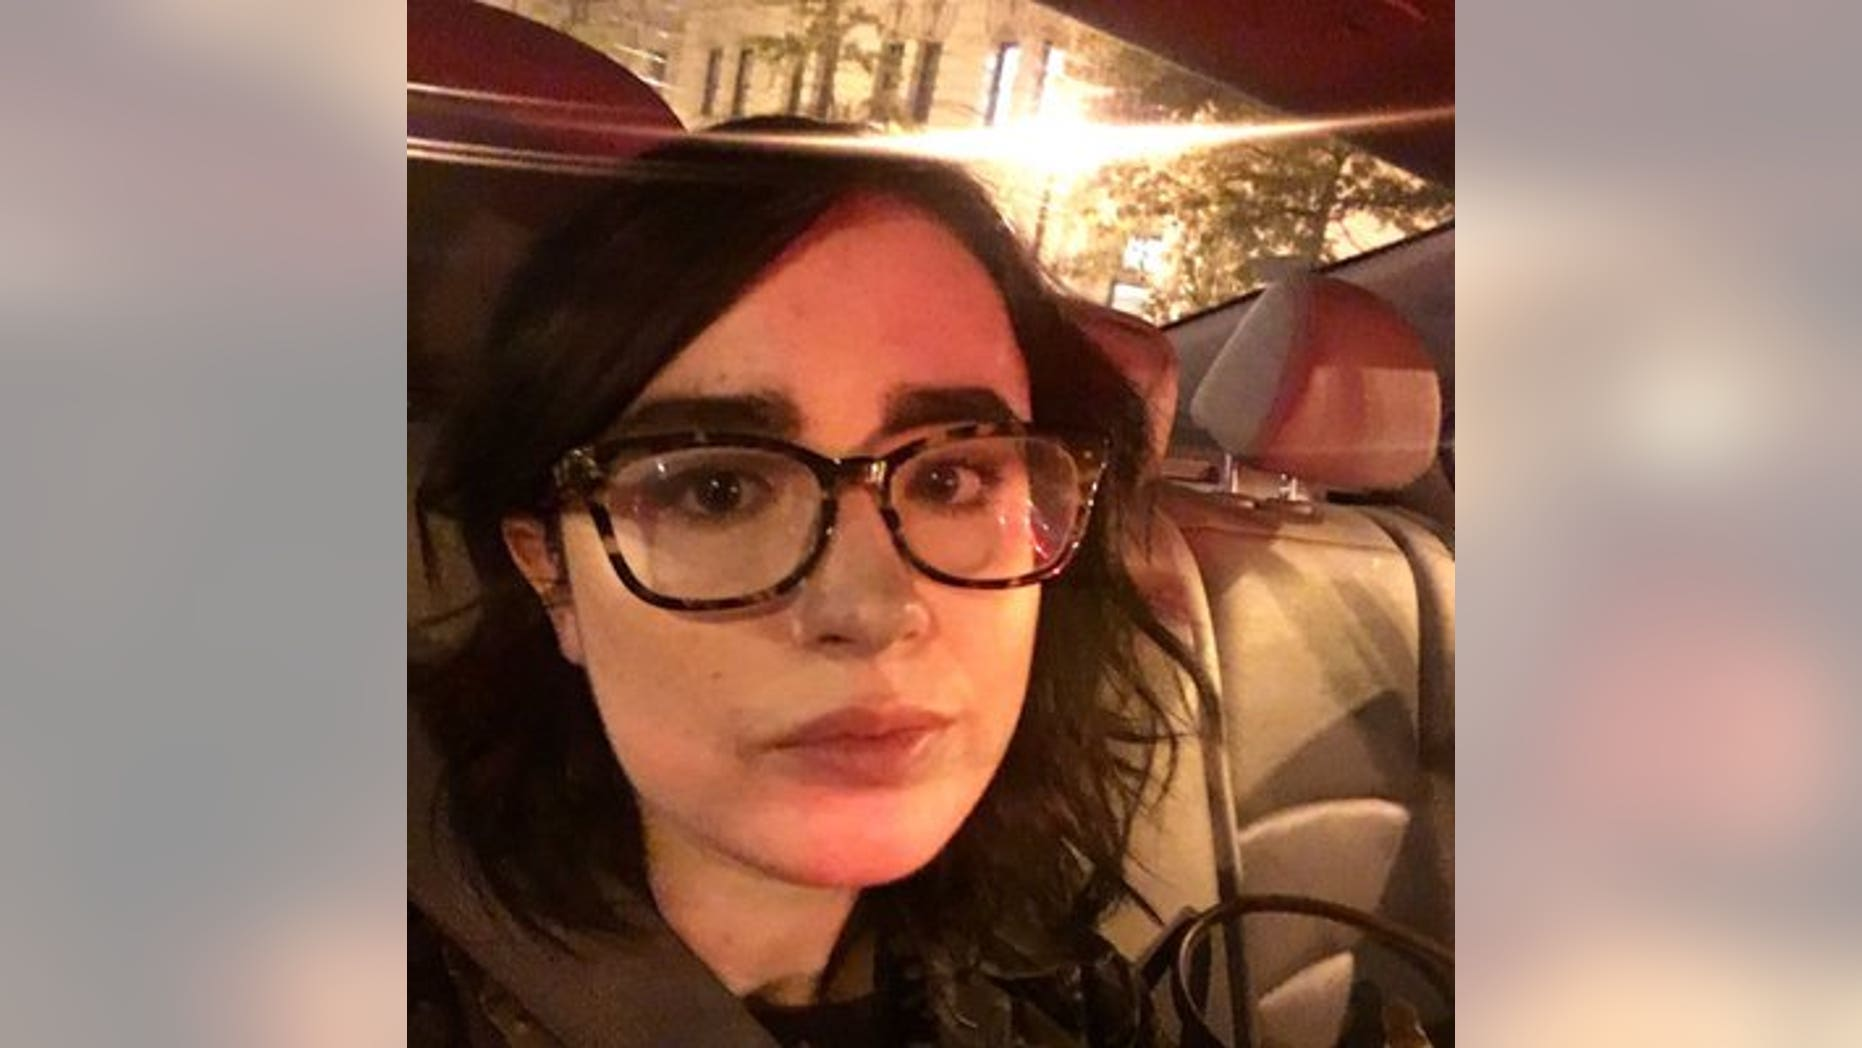 Allison Hrabar, a member of the Democratic Socialists of America who attended the protest against Nielsen over the controversial border law enforcement, was revealed to be a paralegal specialist at the DOJ.